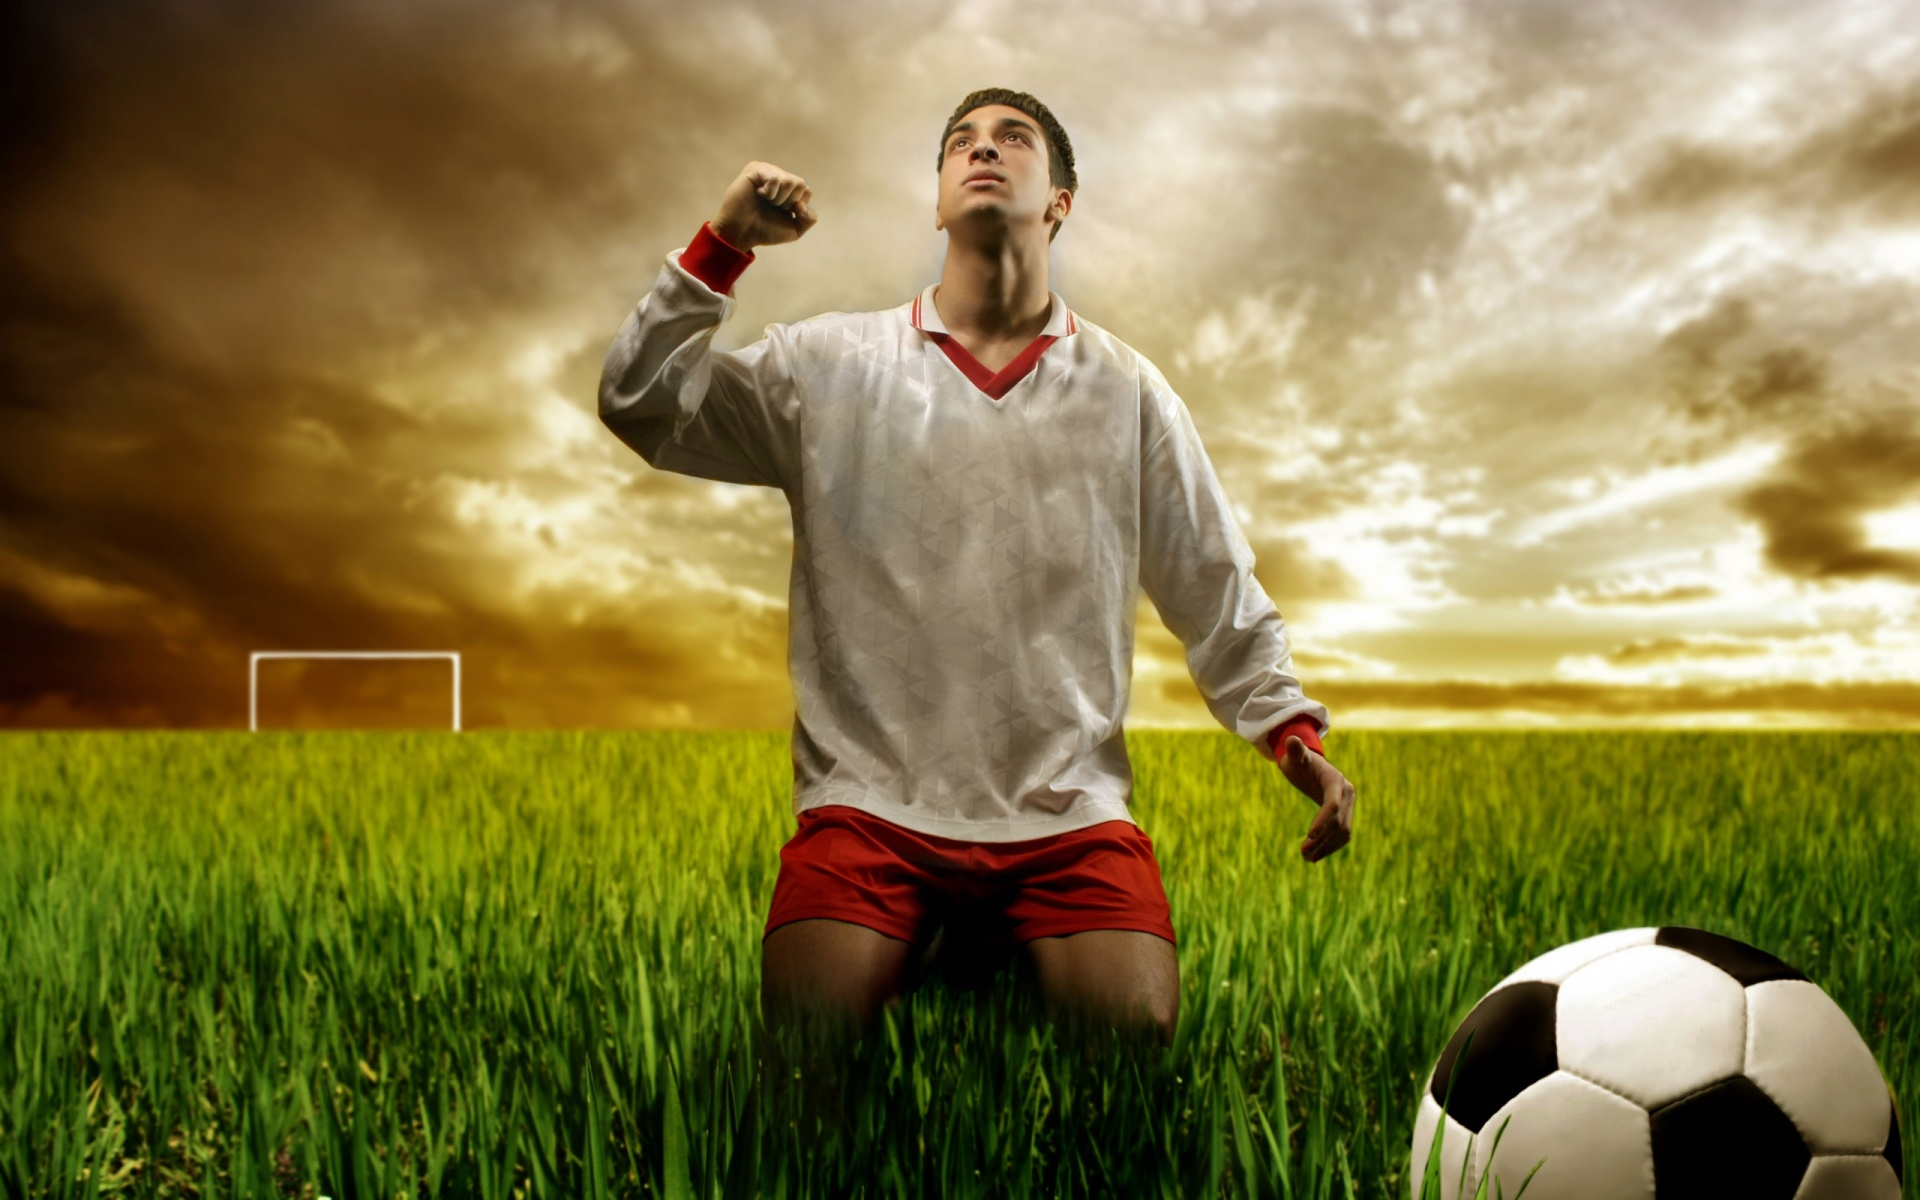 Best Iphone Wallpapers Sports: Football Wallpapers High Quality